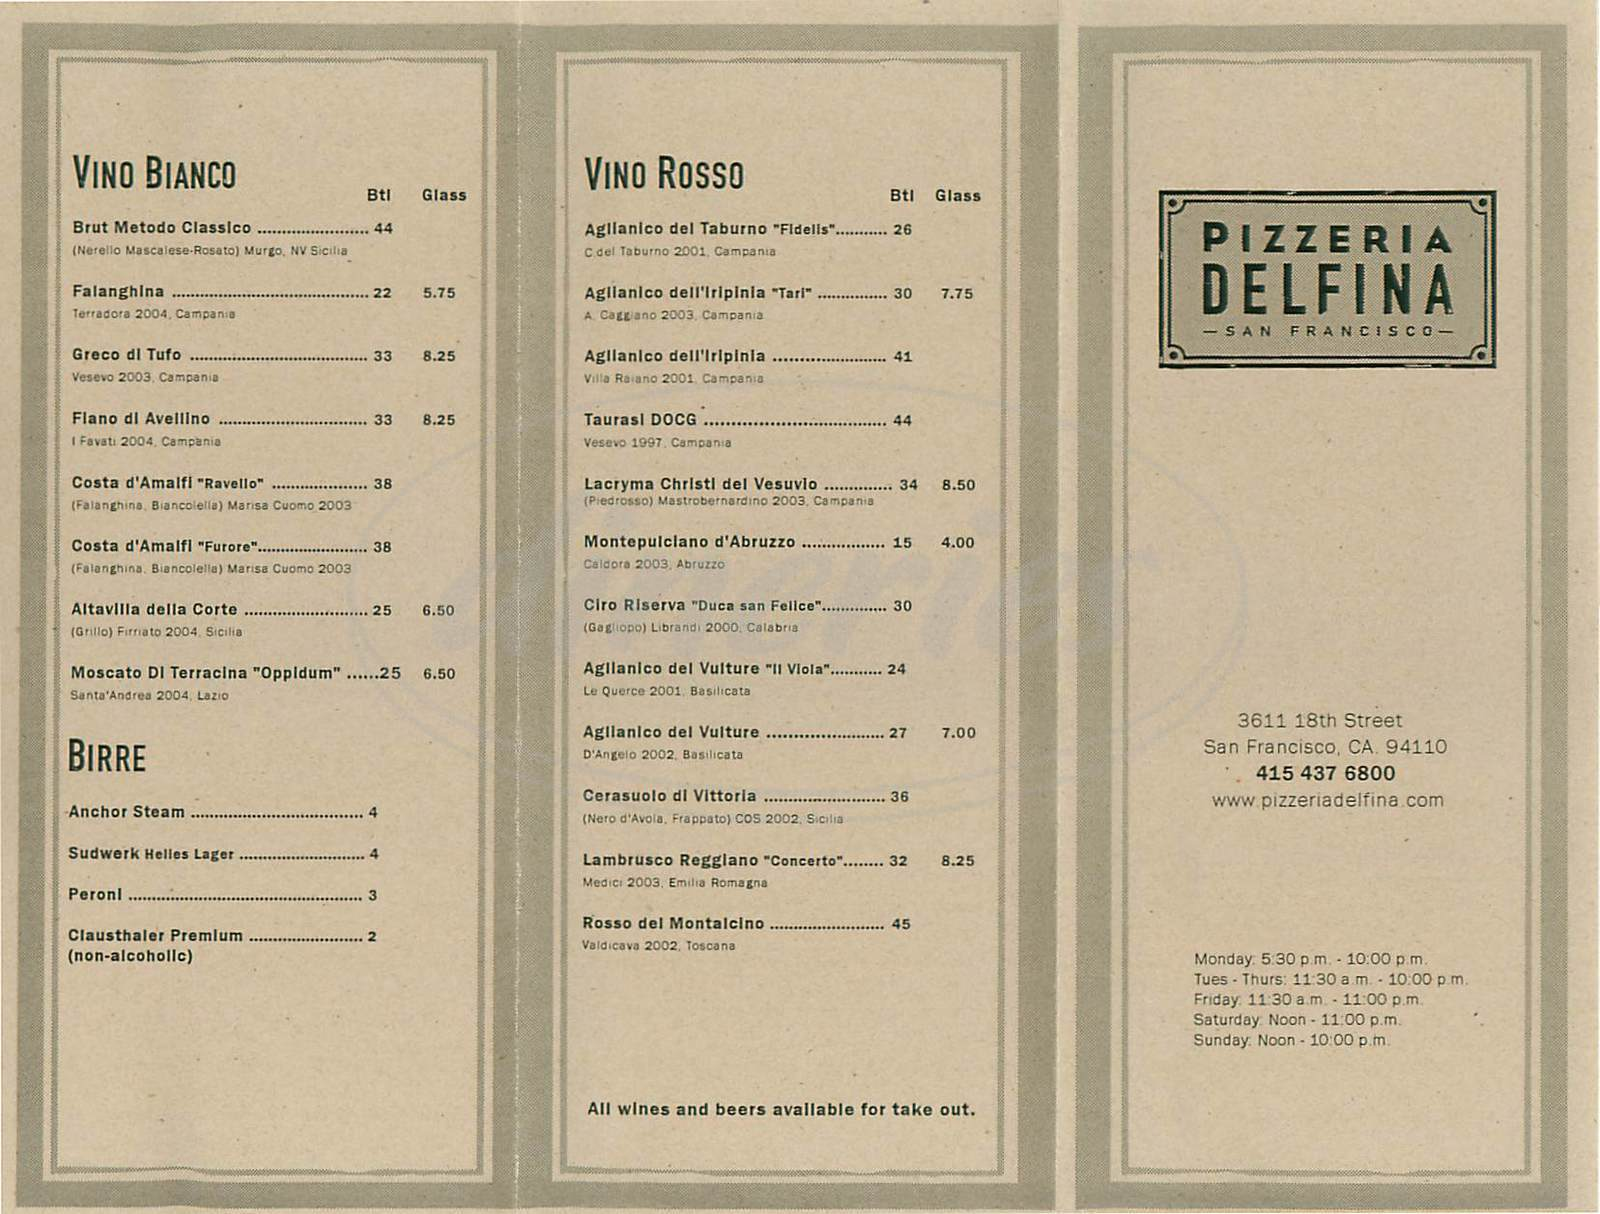 menu for Pizzeria Delfina